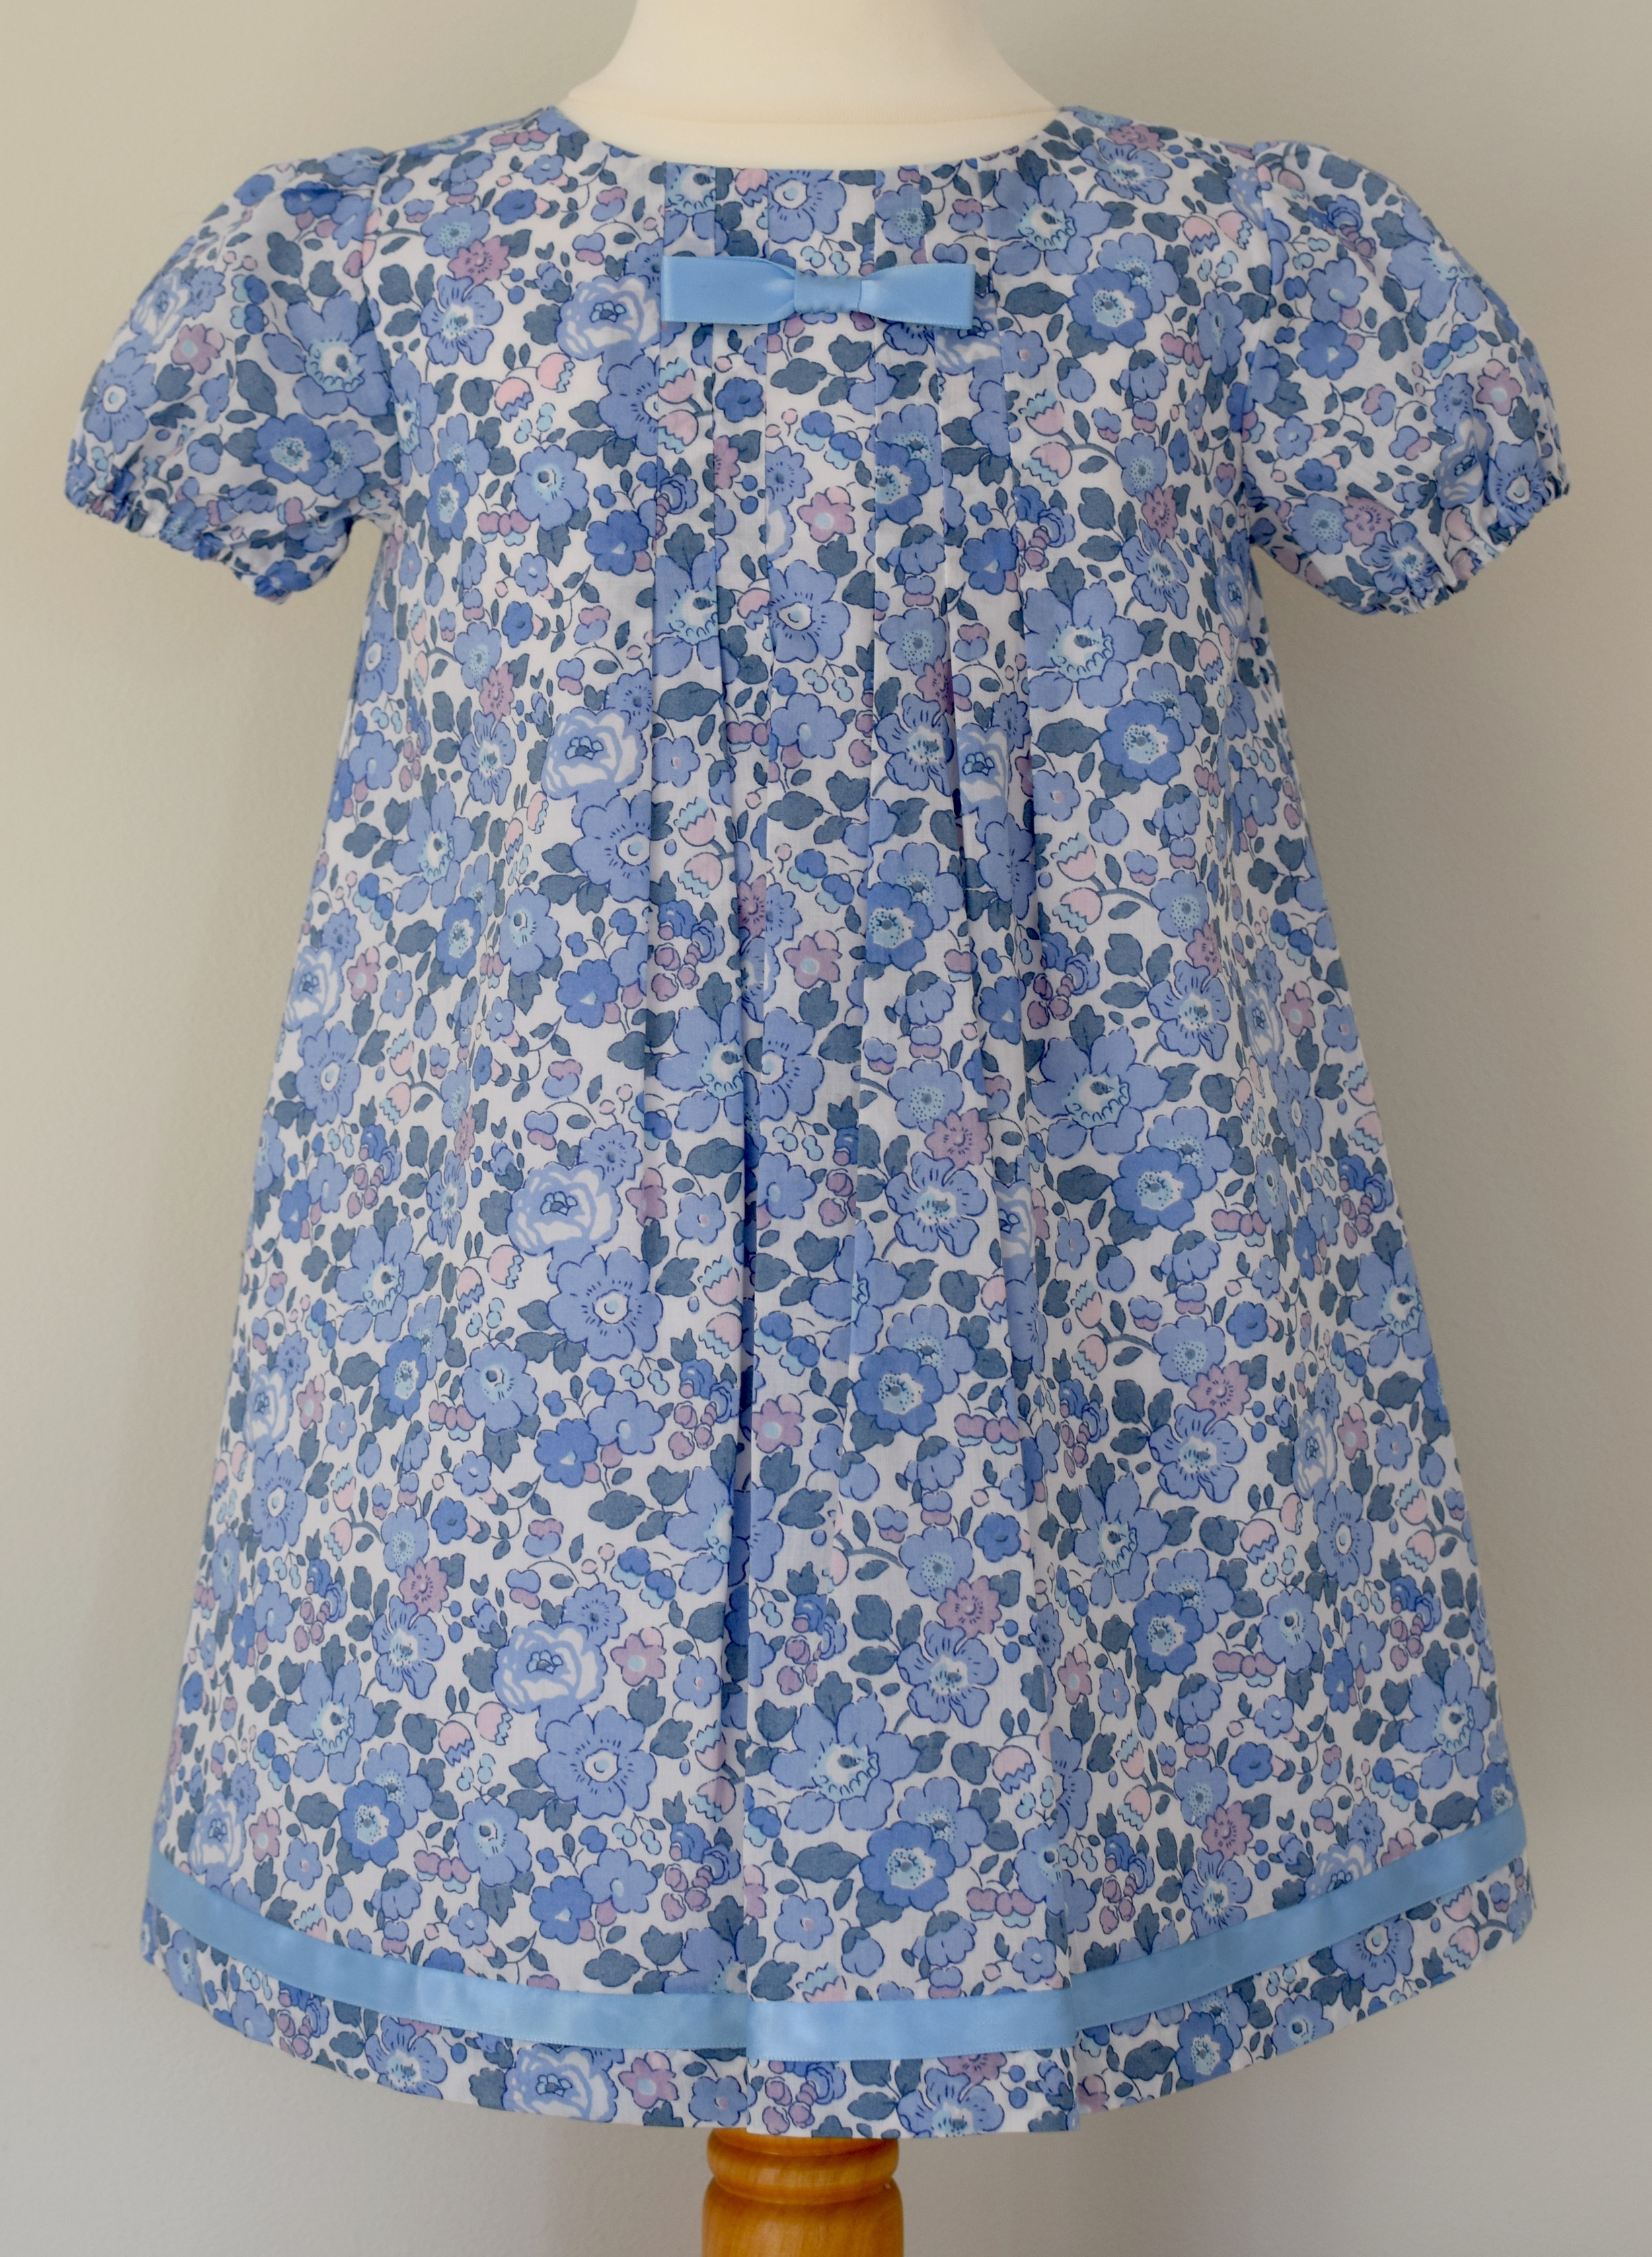 Liberty Betsy blue cap sleeve dress    Fully lined Liberty print, pleated dress with short sleeves,button fastenings at the back,fixed satin ribbon bow at front and matching satin ribbon detail at the bottom  Available up to 3 years.  £40